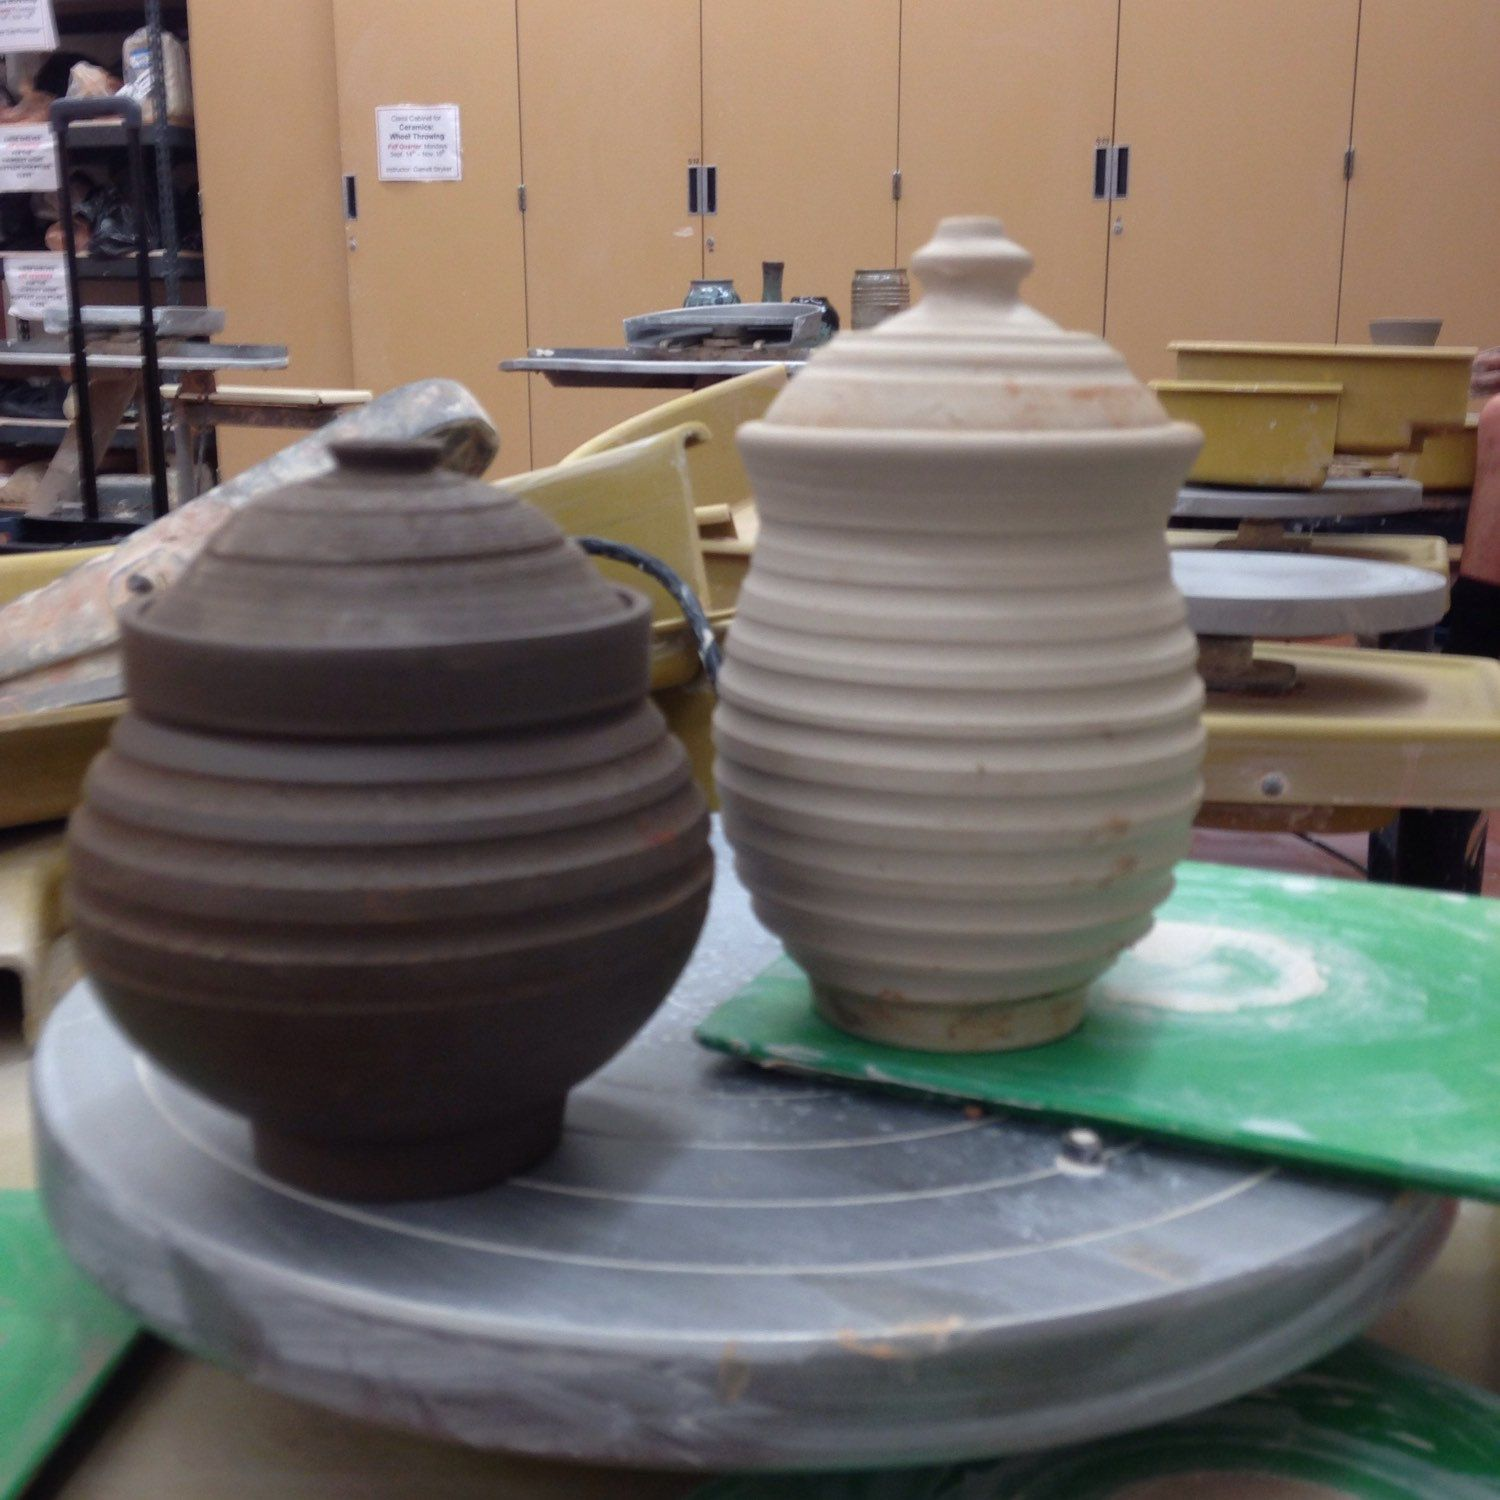 Ready to be bisque fired.